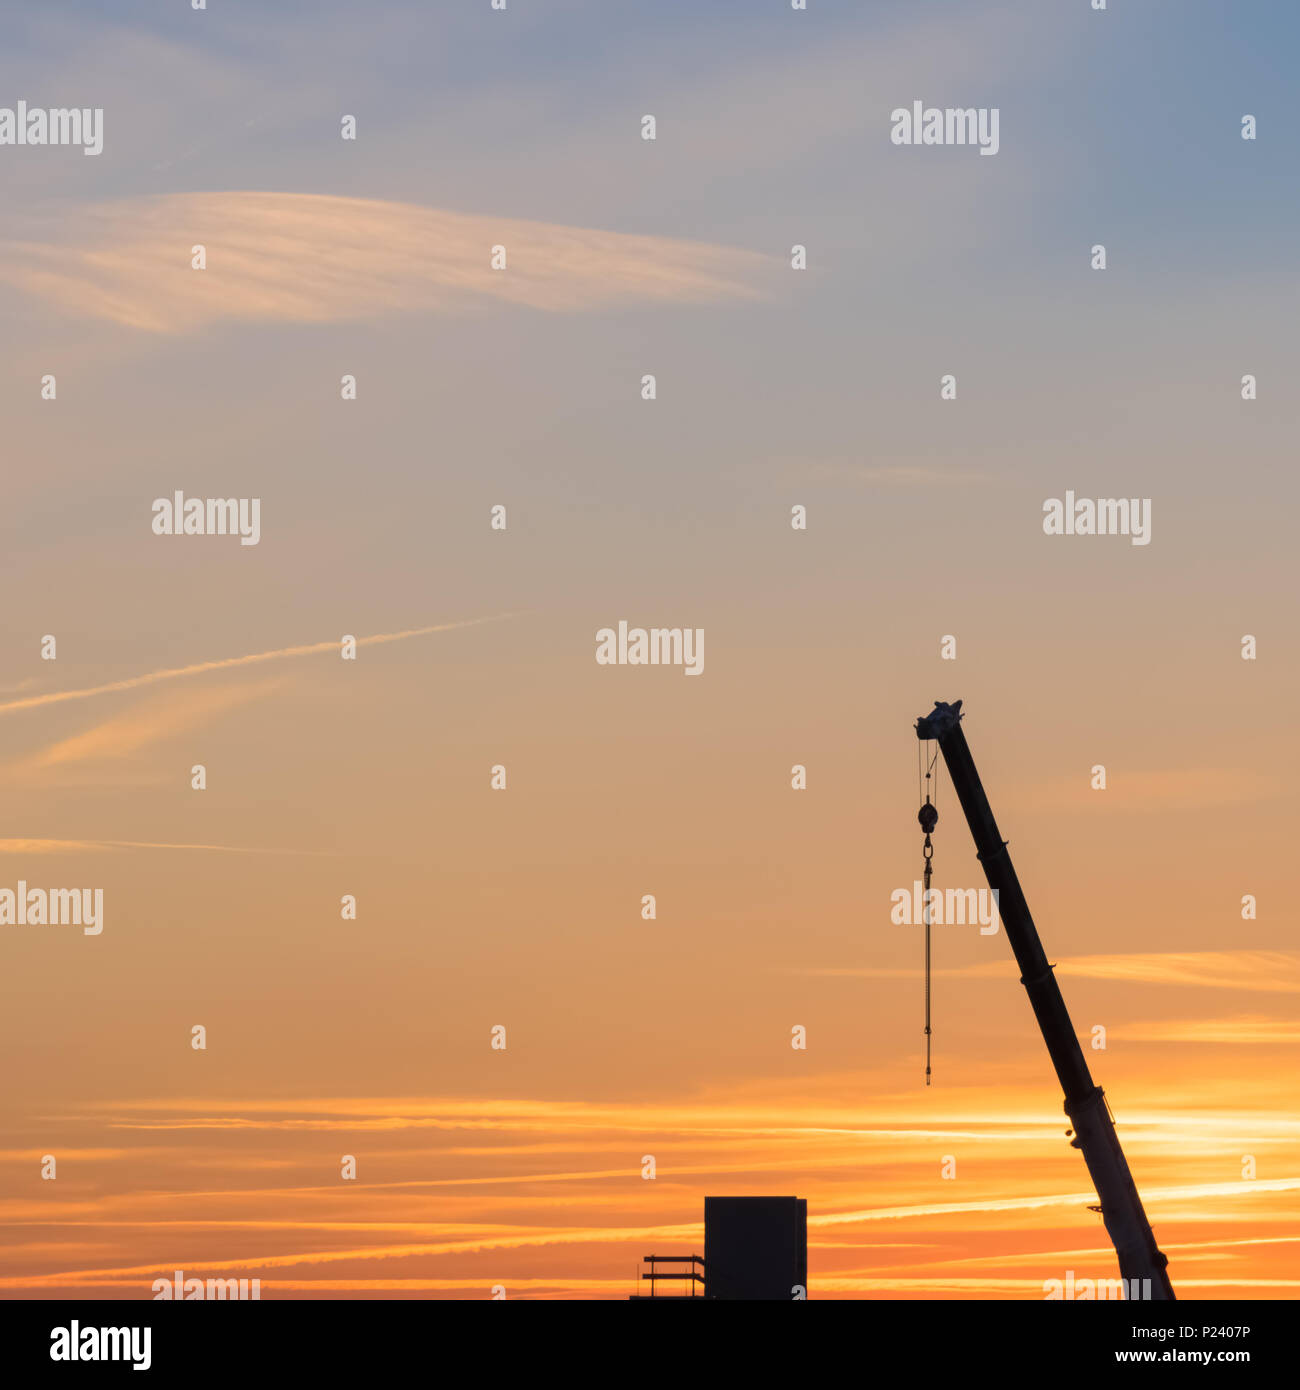 the arm of the crane and a block - Stock Image